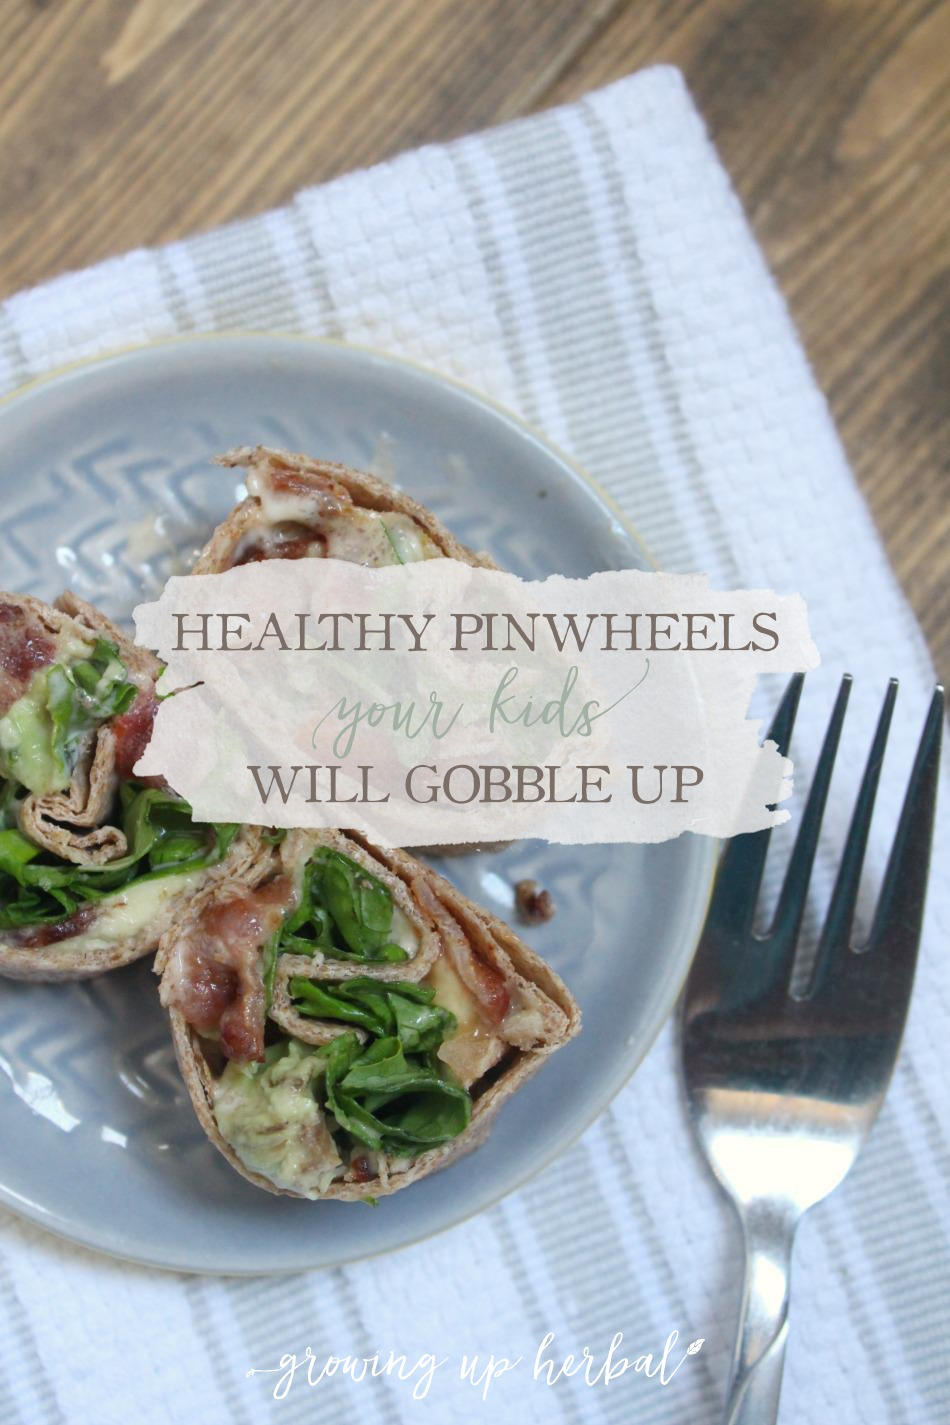 Healthy Pinwheels Your Kids Will Gobble Up | Growing Up Herbal | Looking for a healthy lunch that's hassle-free? Try making your kids these healthy pinwheels. With so many options, they're sure to love them all!